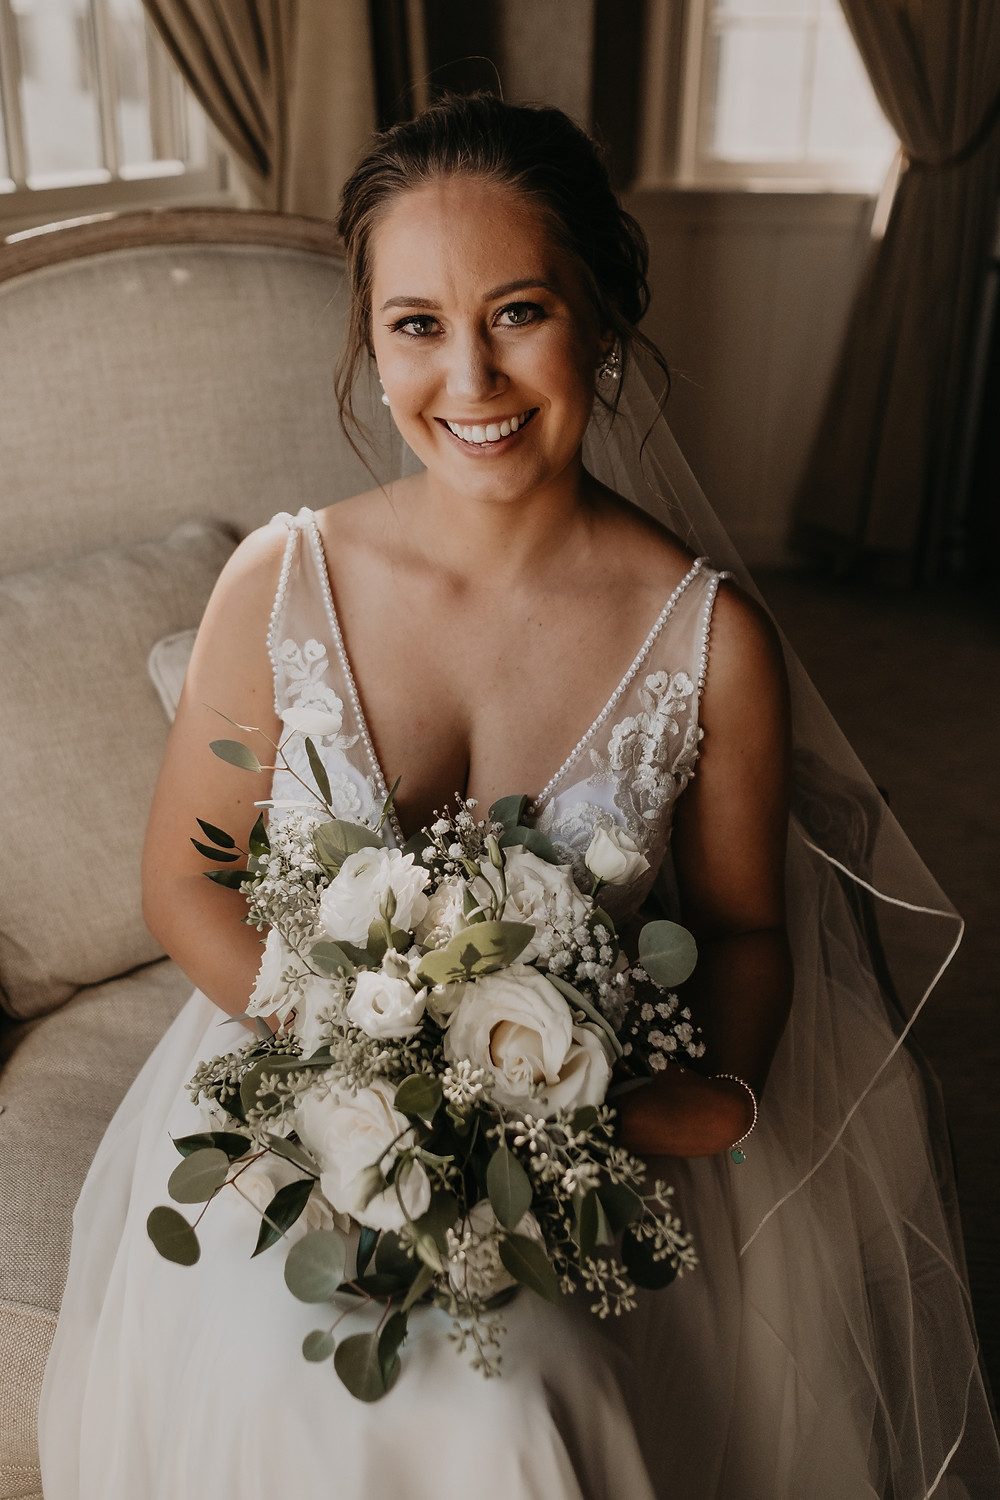 Bridal portrait at Northern Michigan wedding. Photographed by Nicole Leanne Photography.